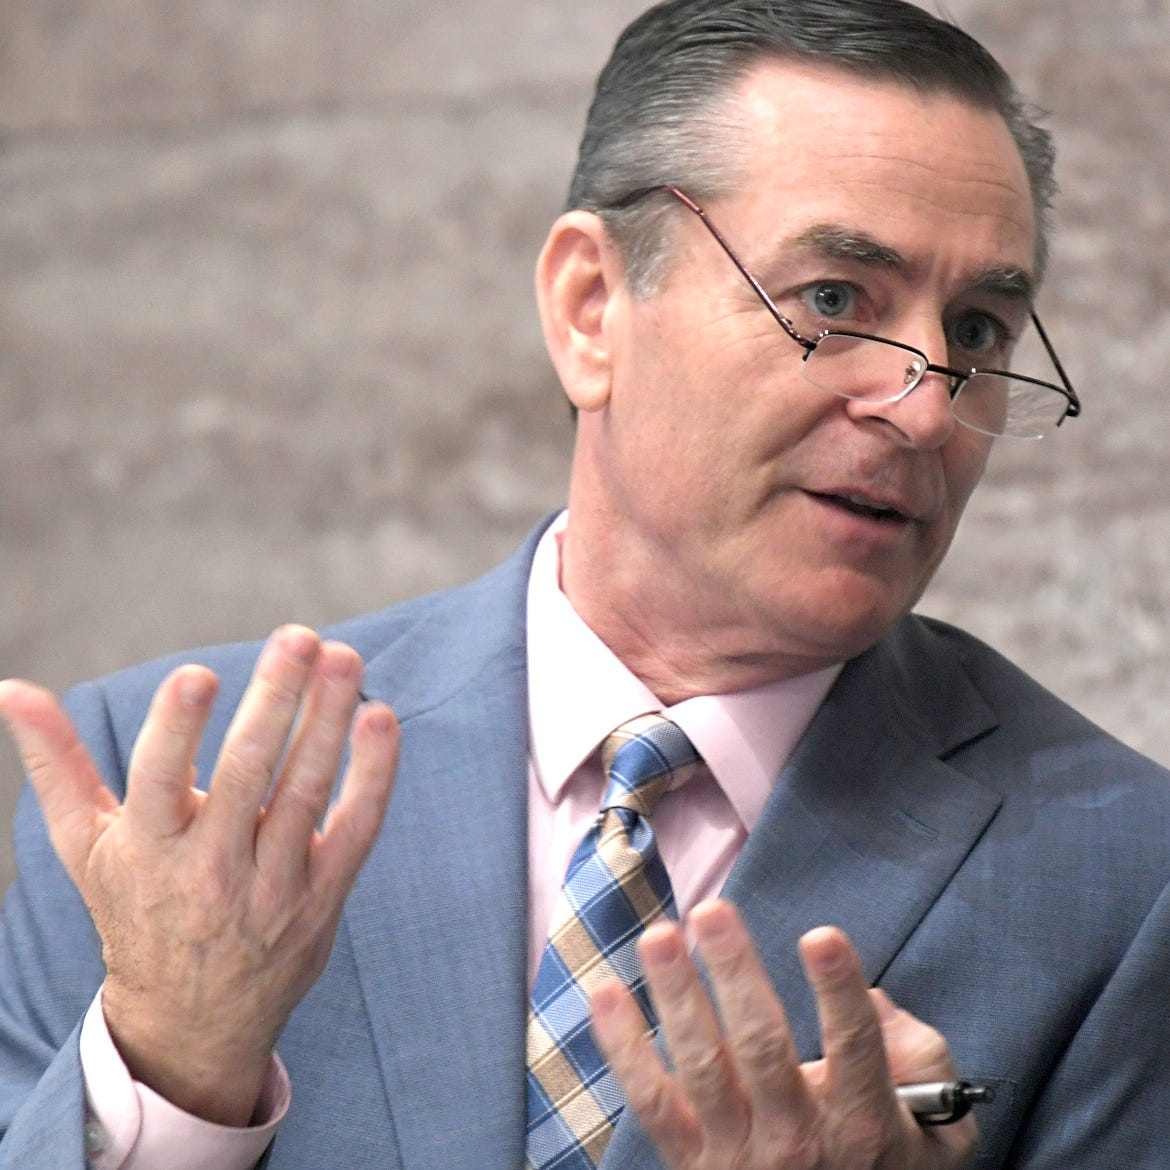 Discussing racism in House, Speaker Casada says chief of staff's texts were 'punch to the gut'